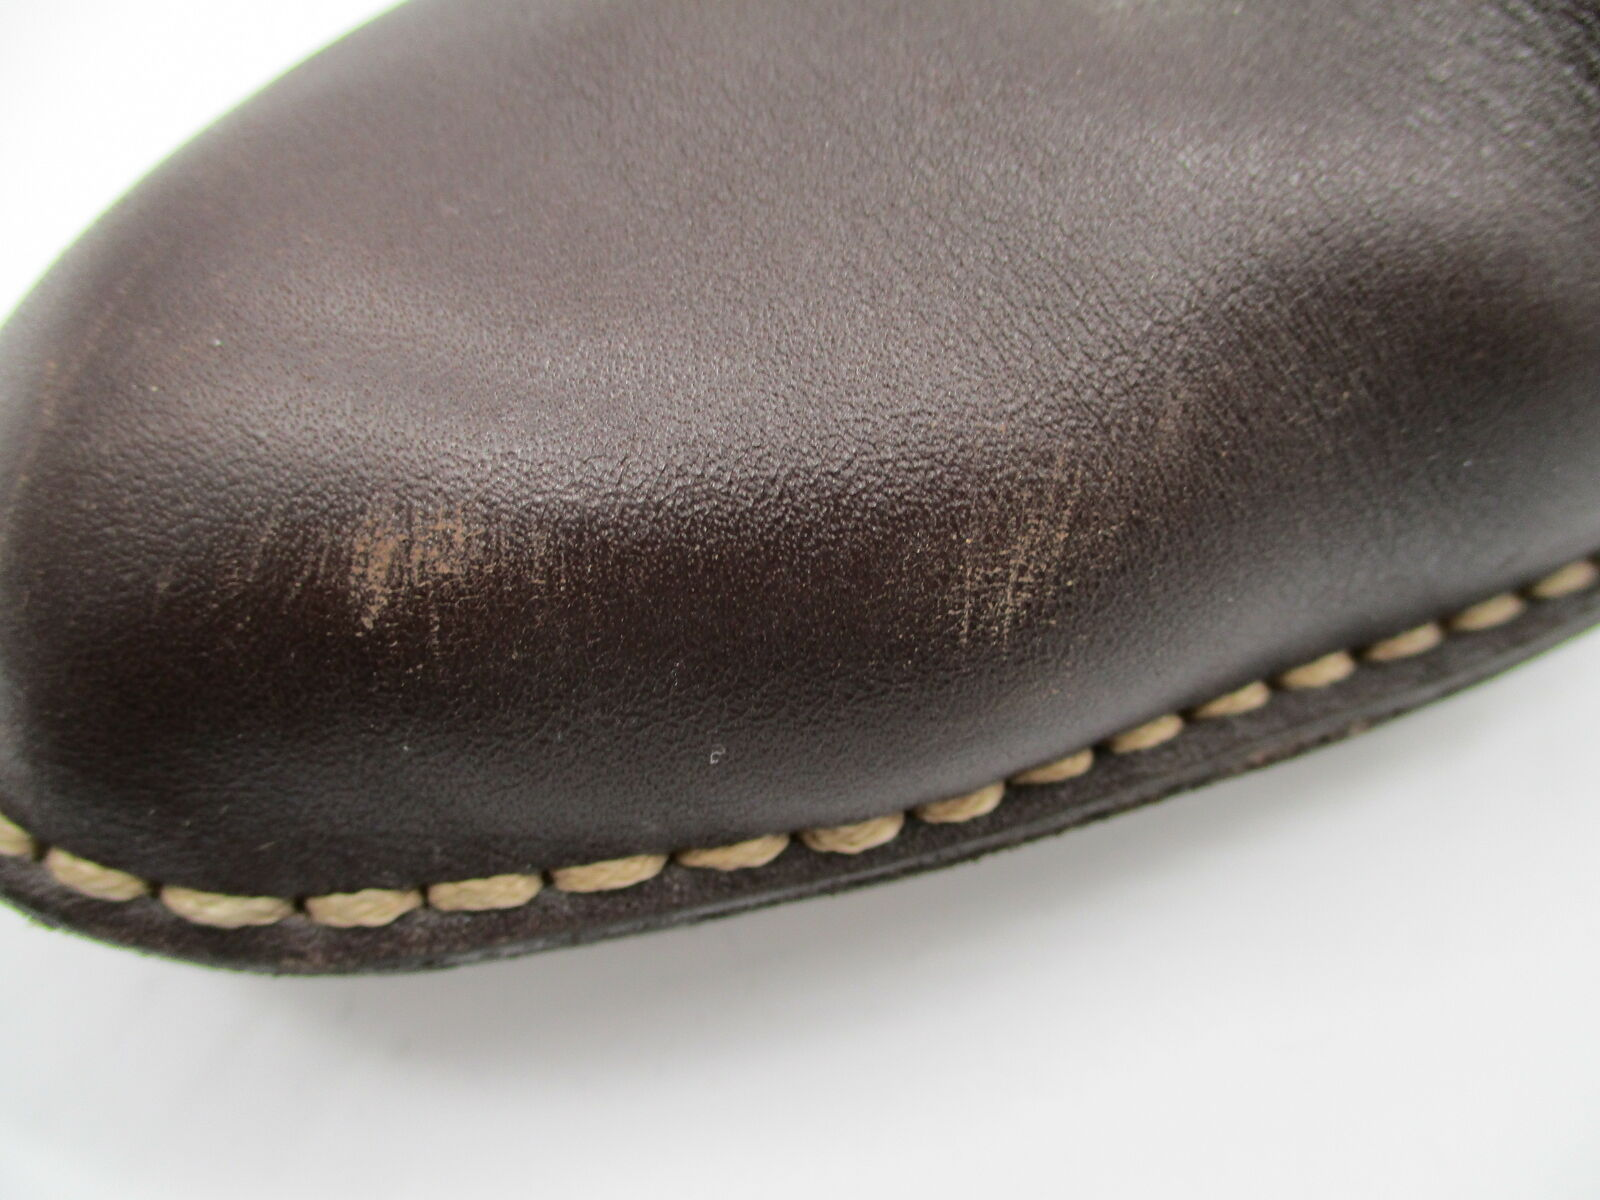 TODS brown leather block heel mules sz 40.5 - image 9